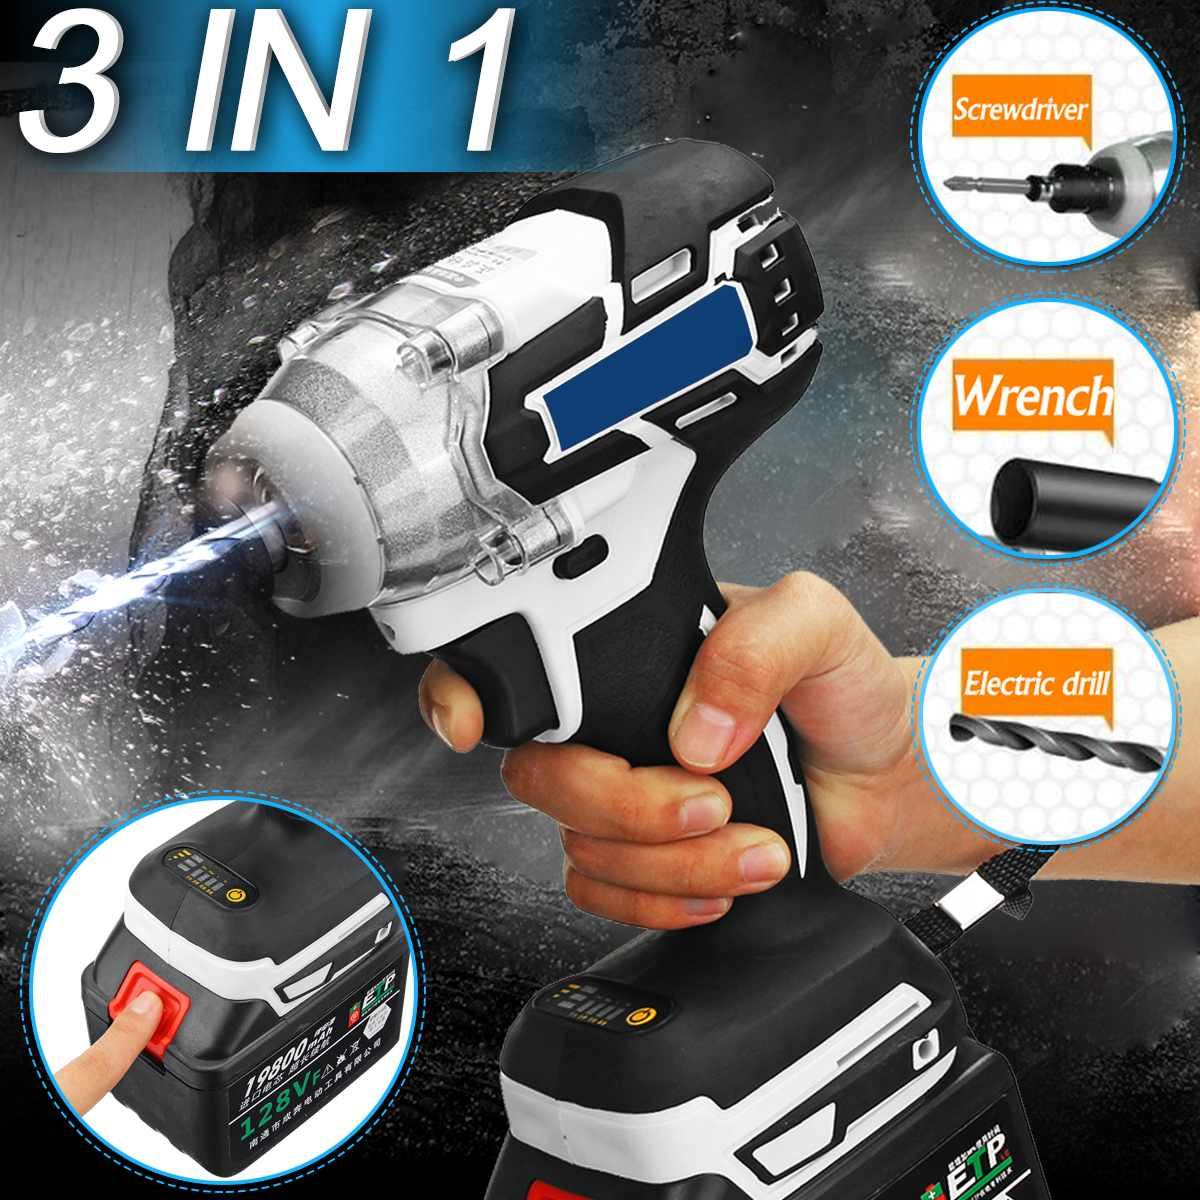 3 IN 1110-240V 1280W Electric Cordless Brushless Hammer Drill Screwdriver 10000mAh Impact Drill Power Tools Adjustable 240-520NM